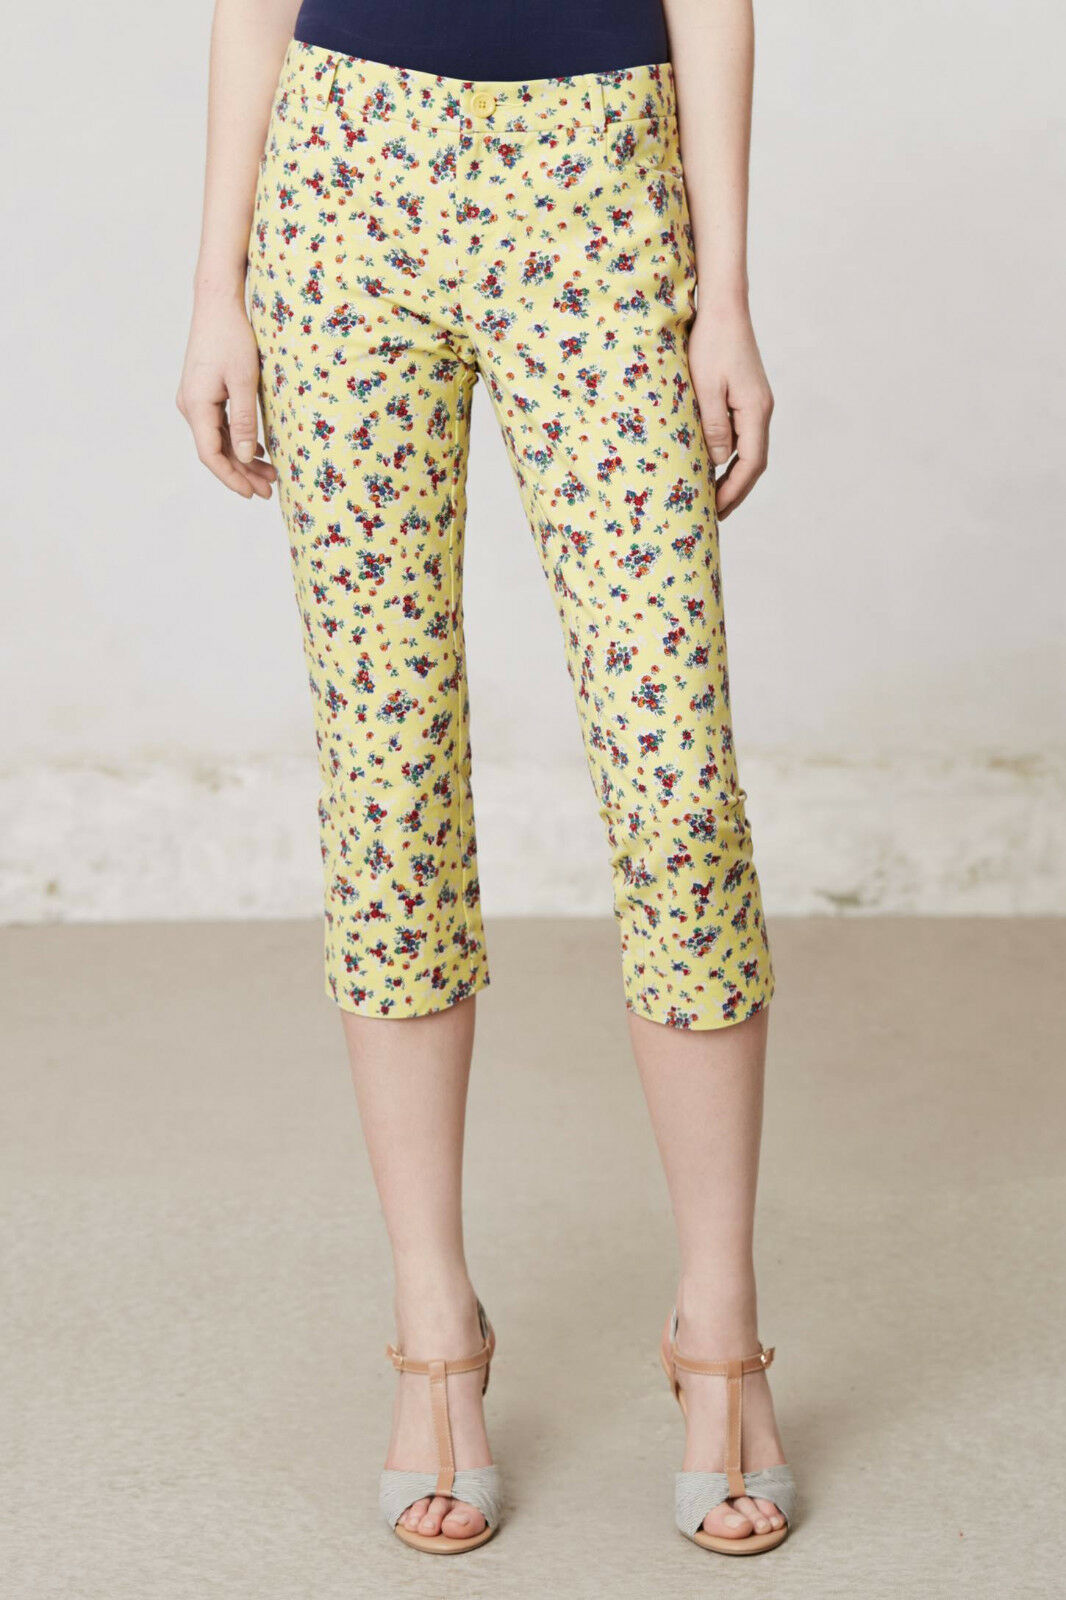 Cartonnier Retro Flora Charlie Crops Pants Size 2,4,8,10,12 NW ANTHROPOLOGIE Tag